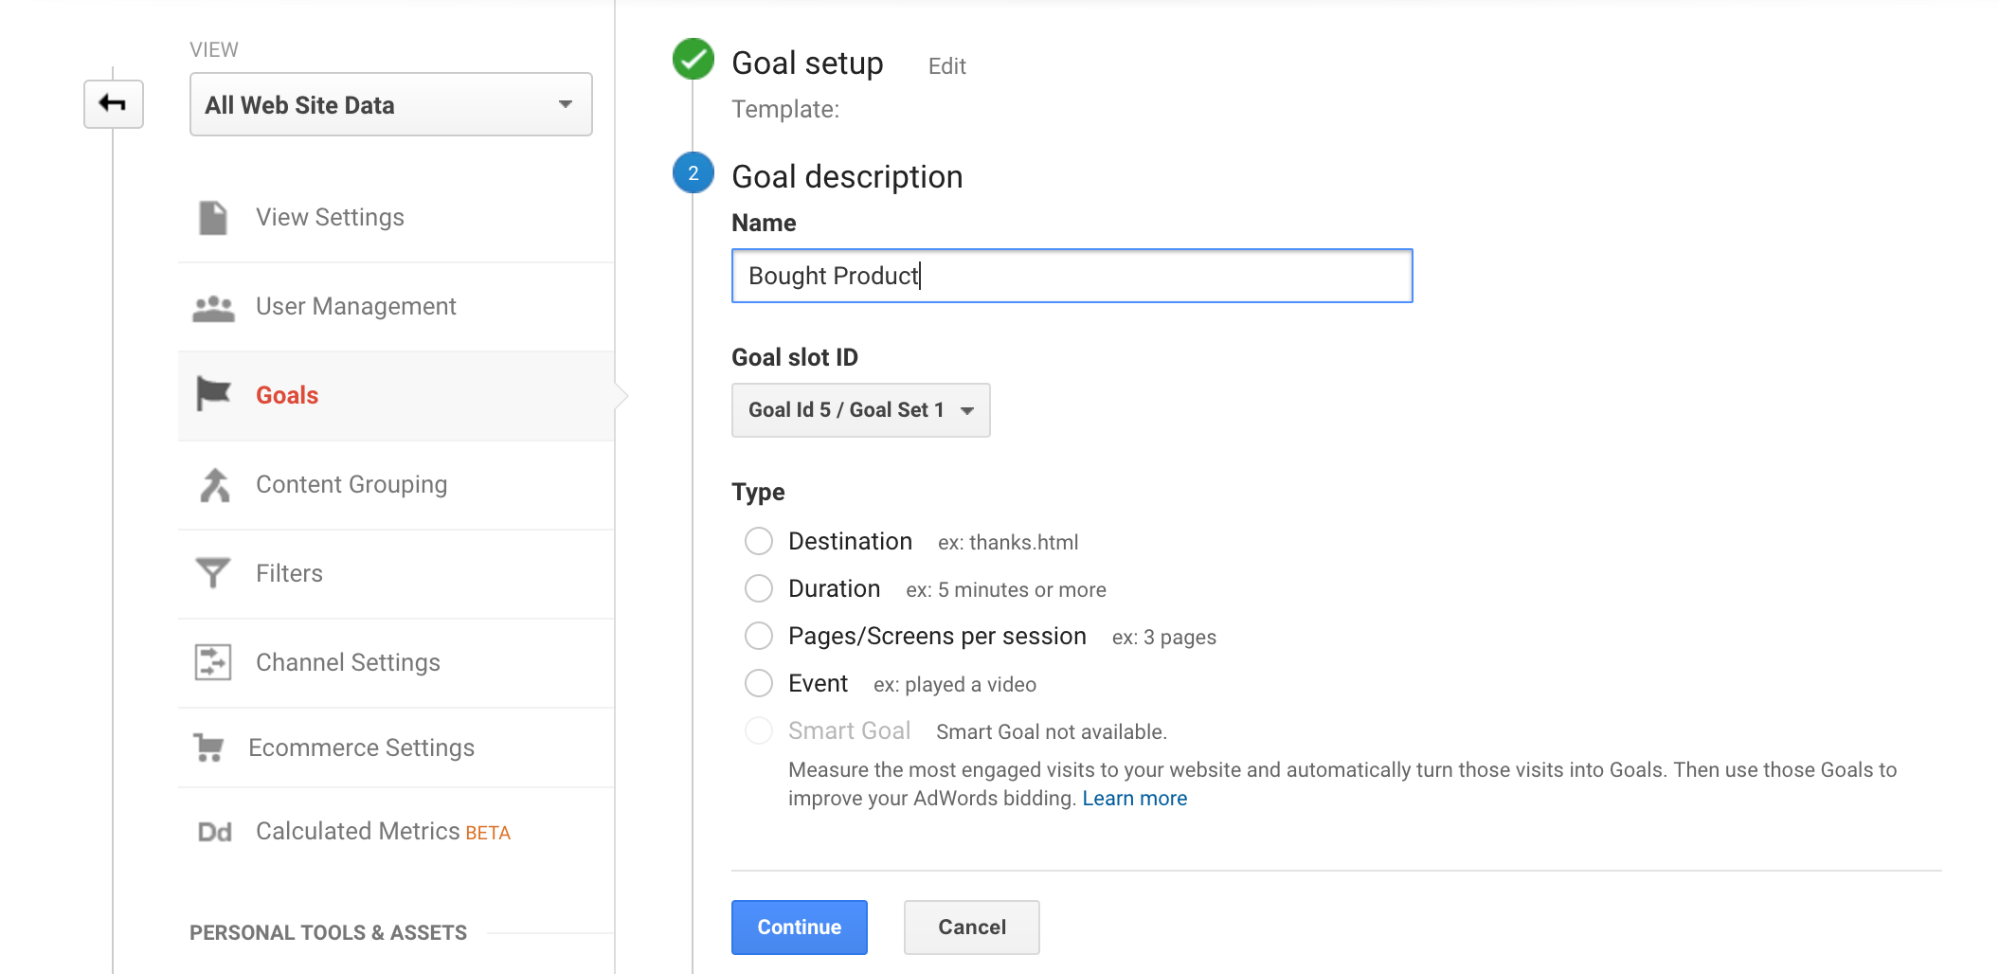 Screenshot showing the goal setup page on google analytics